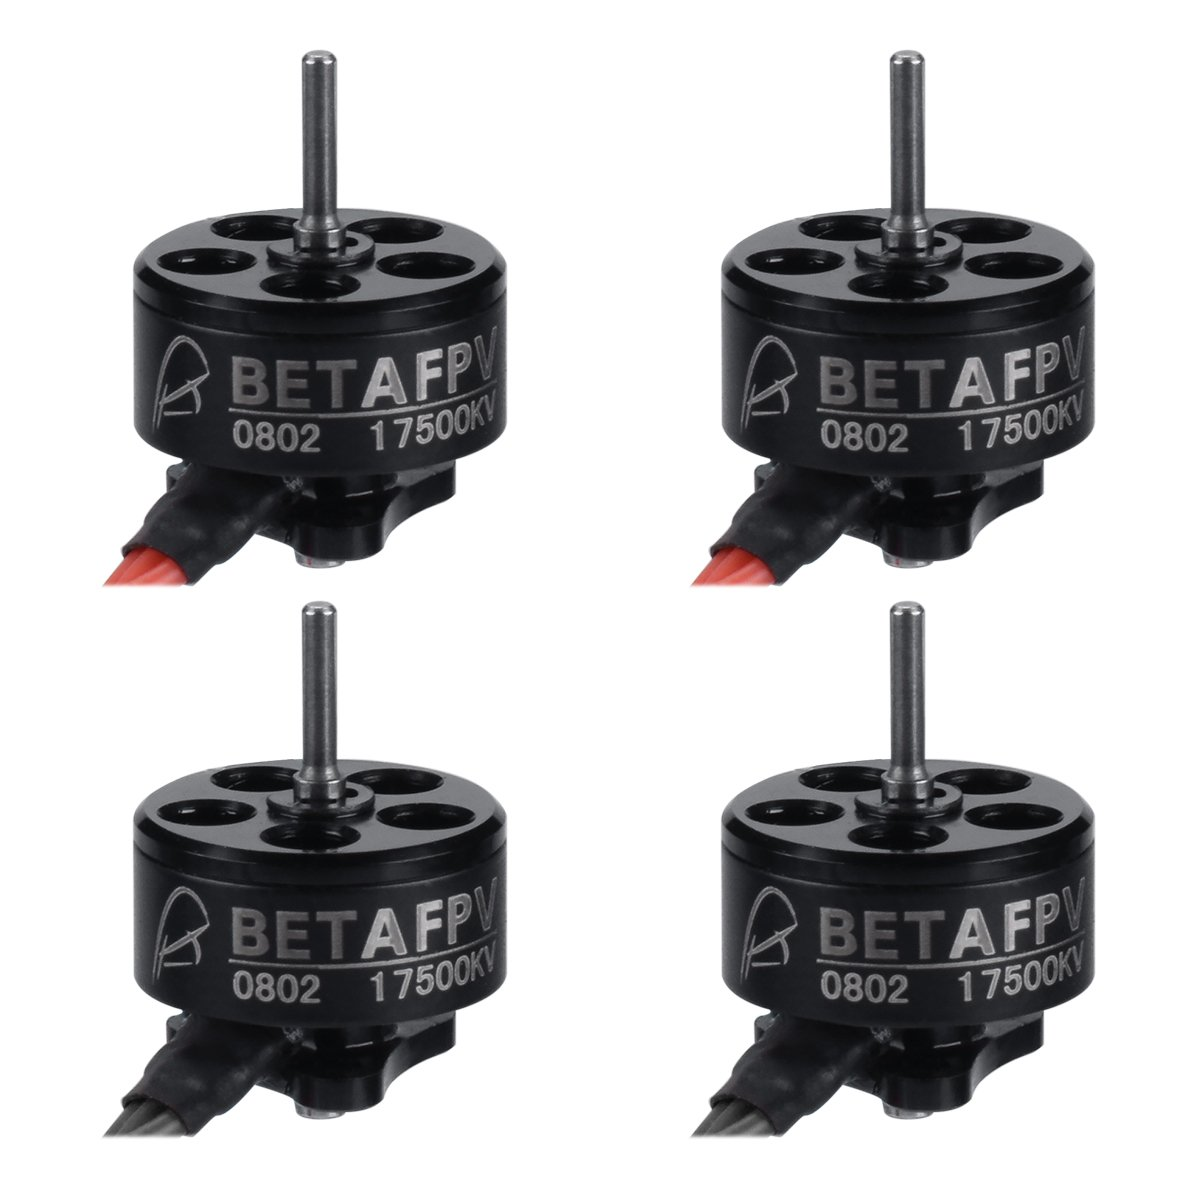 Beta FPV 0802 17500KV Brushless Motors 4set